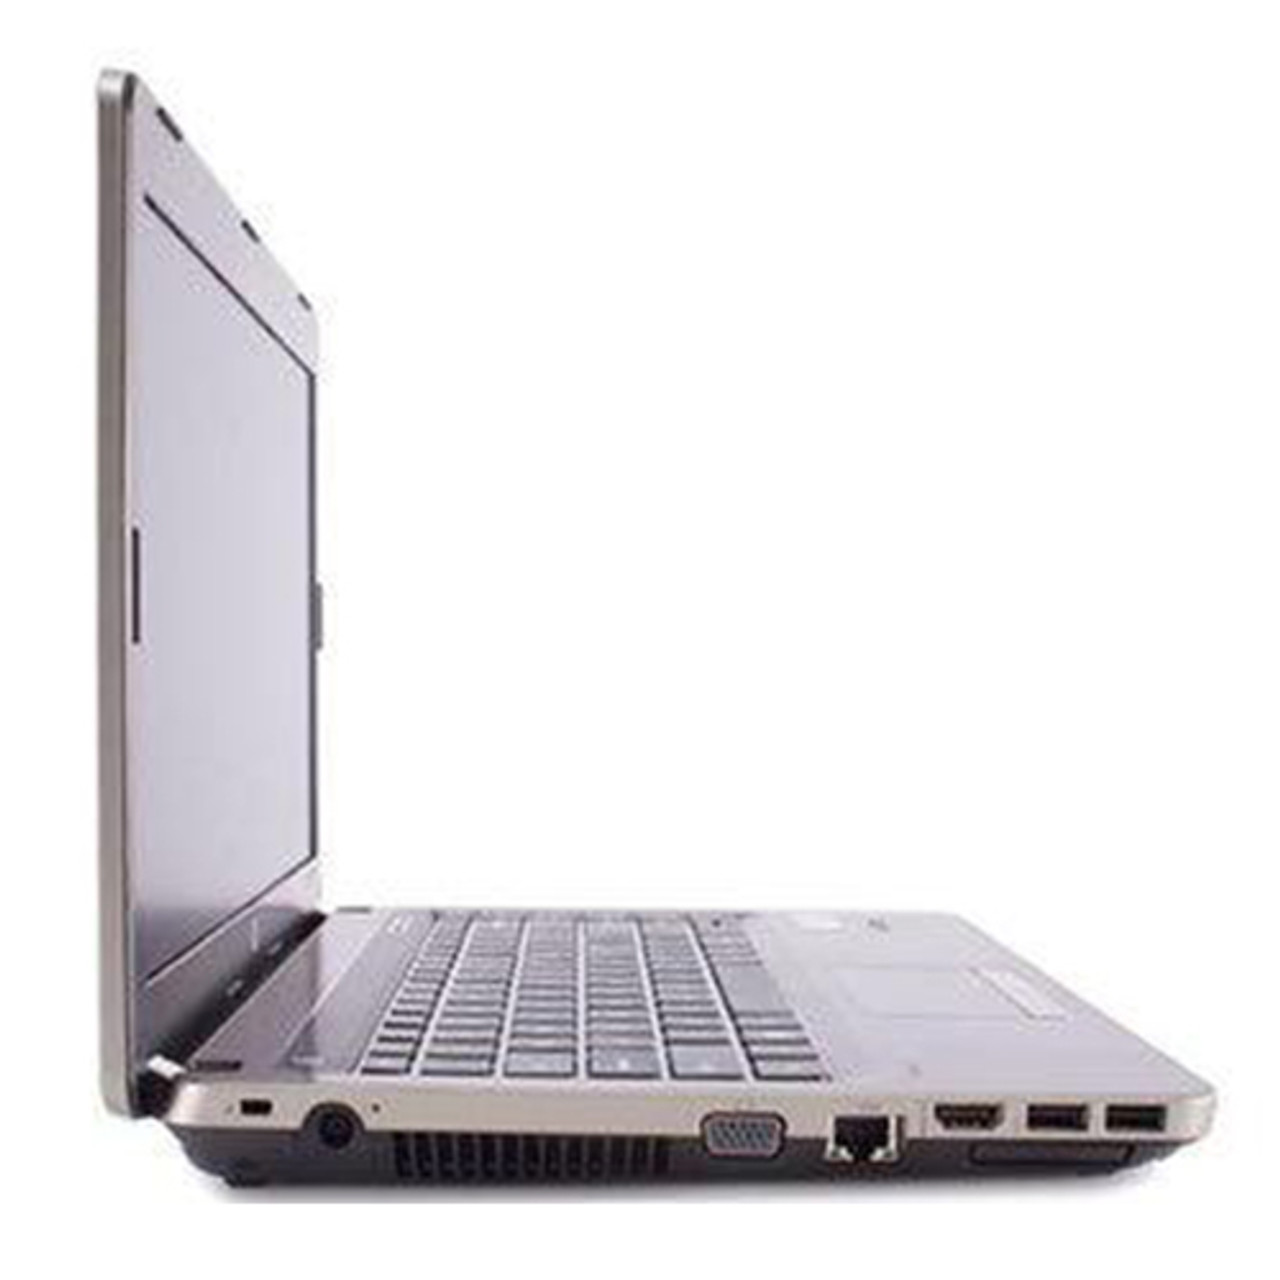 Fast and Dependable HP ProBook 4430 | 14 1